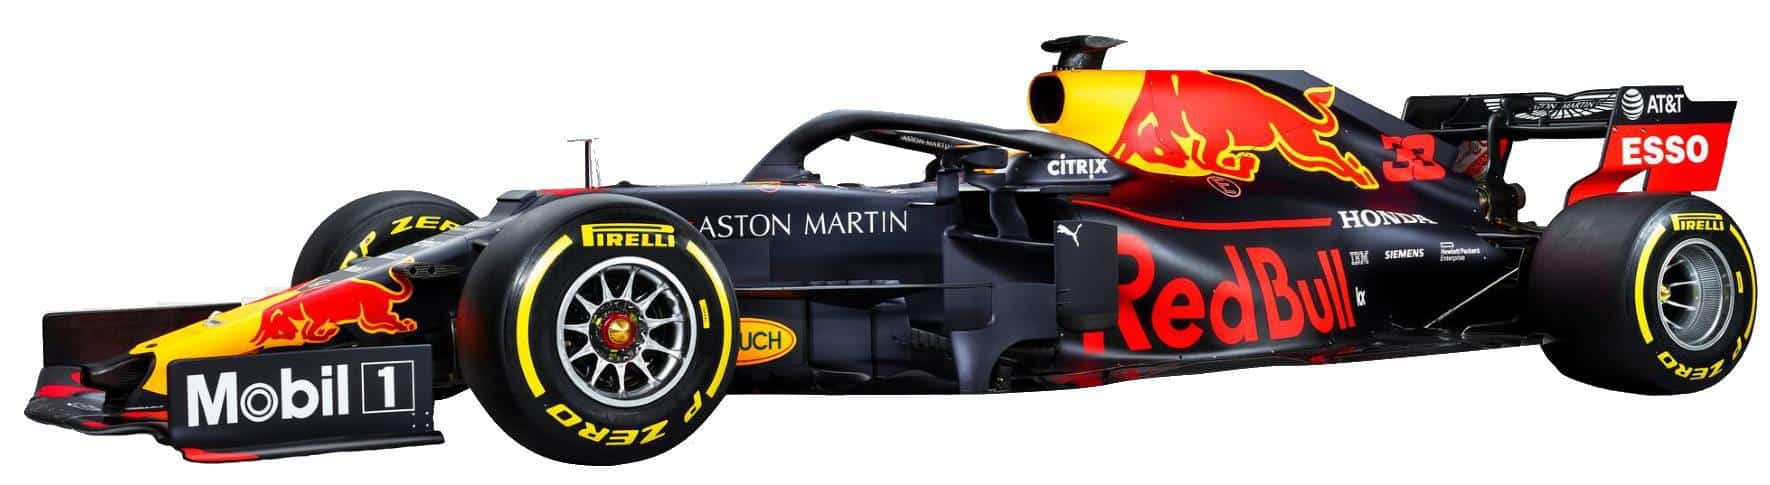 2019 Red Bull RB15 launch studio photos racing livery side no background Photo Red Bull Edited by MAXF1net